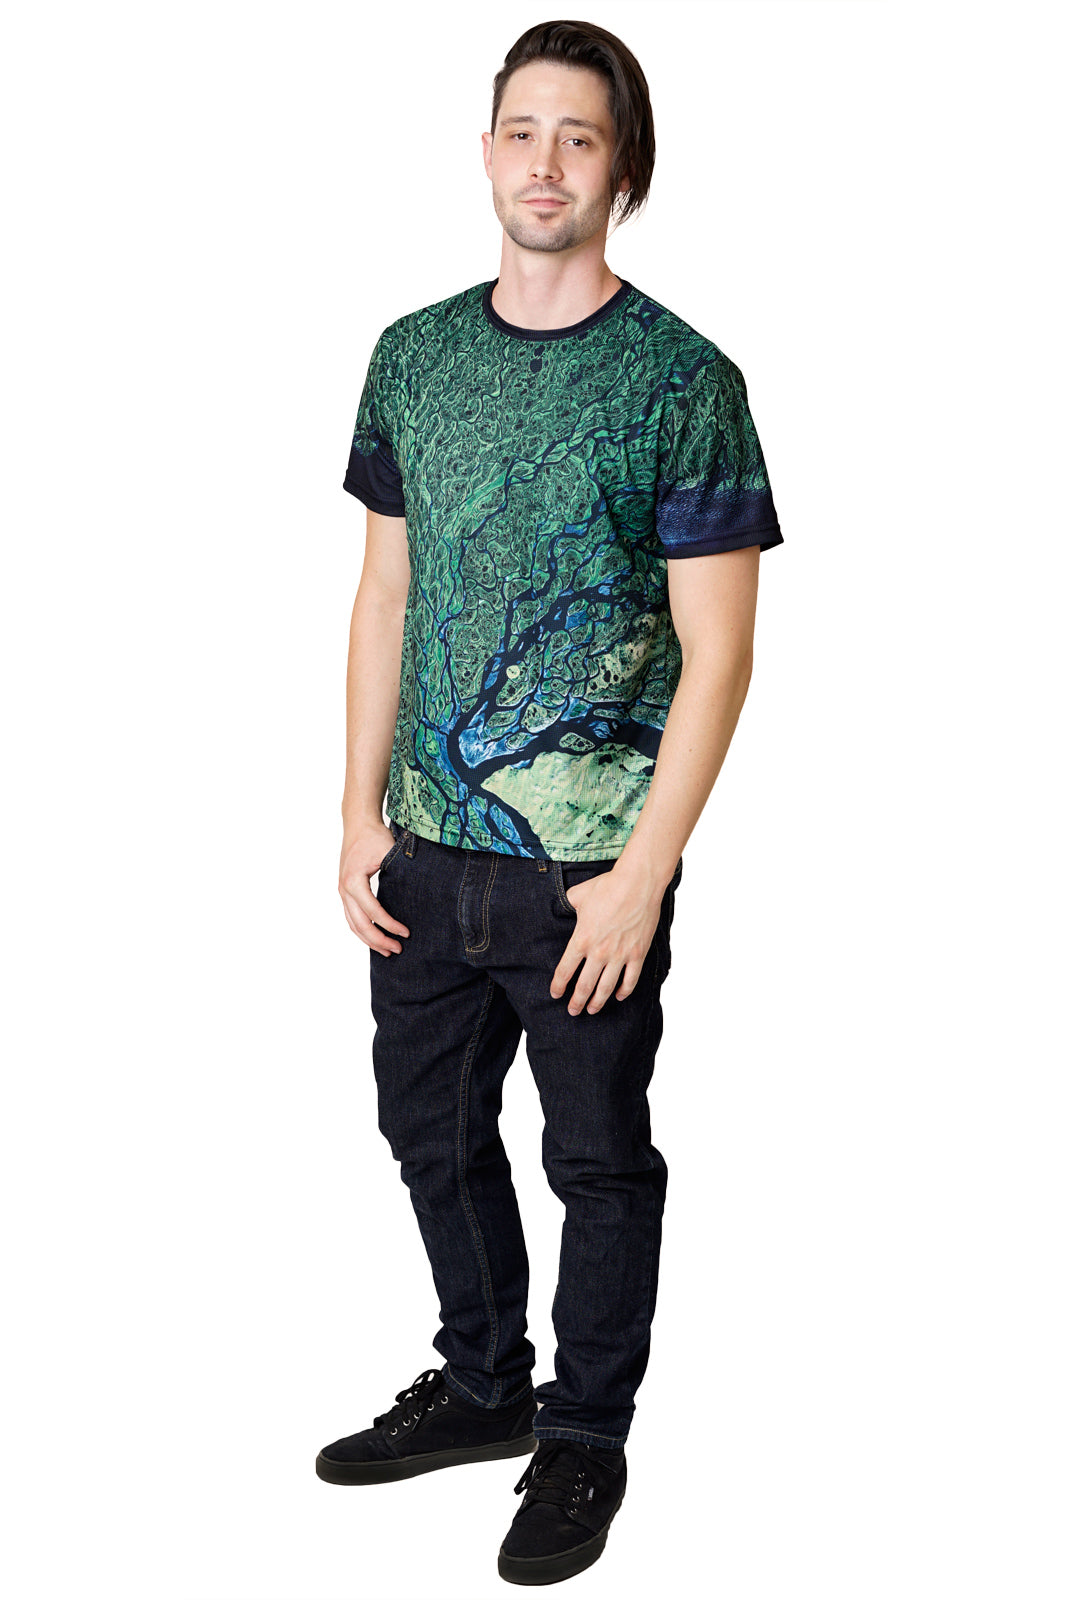 Mens Short Sleeve T-shirt-Nature Performance Clothing-Satellite Image of Earth-Lena Delta-Full View